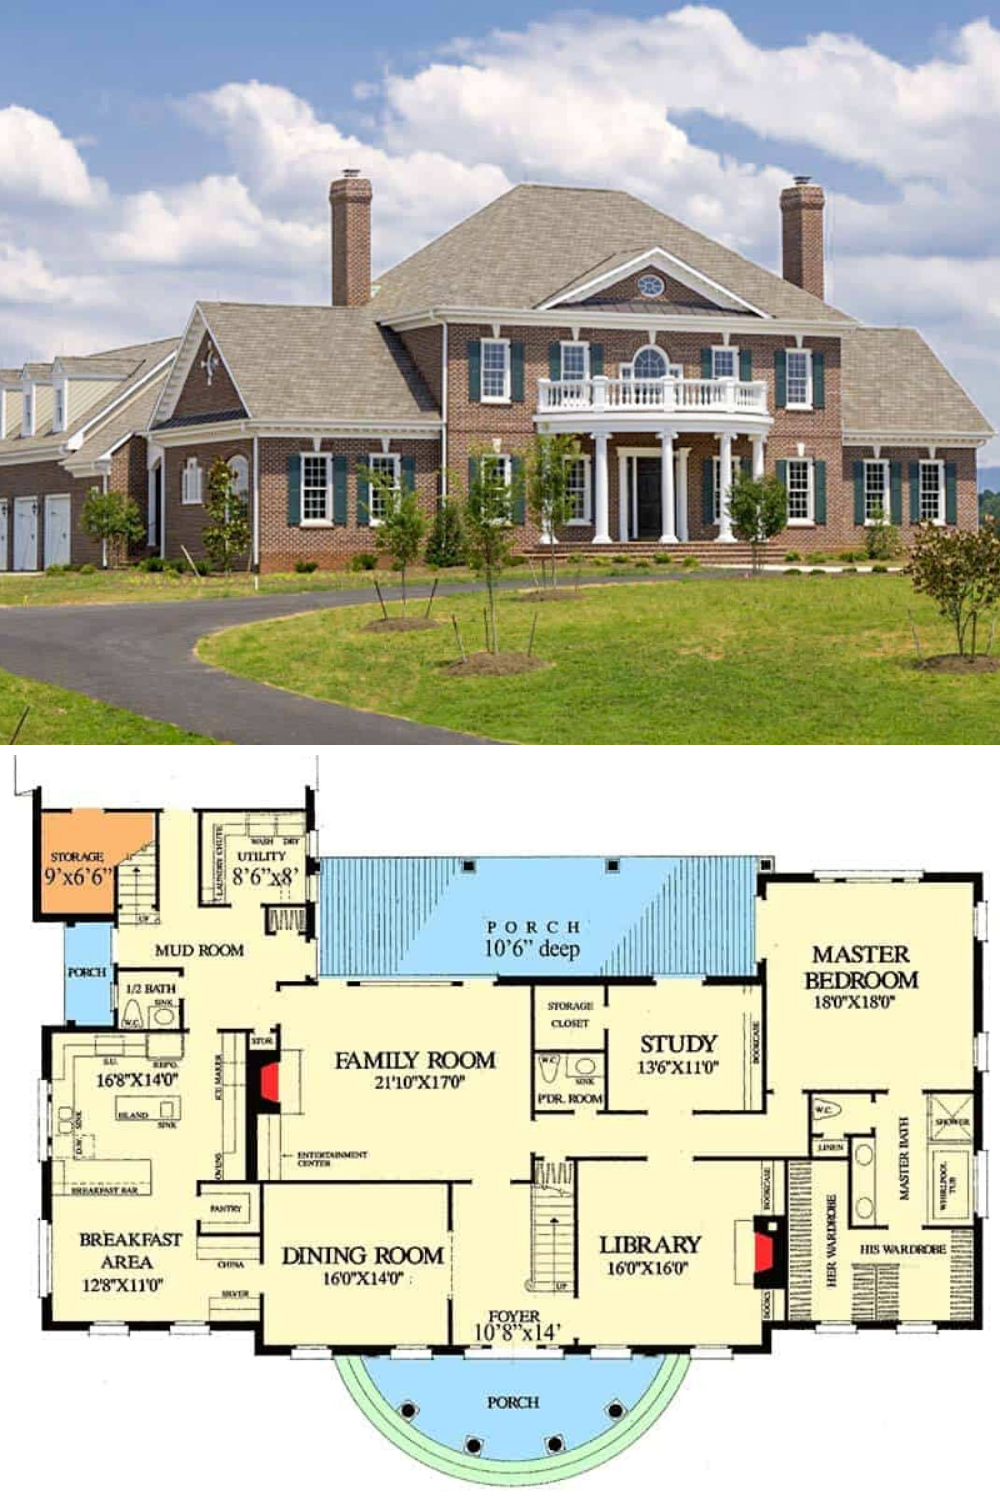 4 Bedroom Two Story Luxury Georgian Home Floor Plan Georgian Homes House Floor Plans Mansion Floor Plan